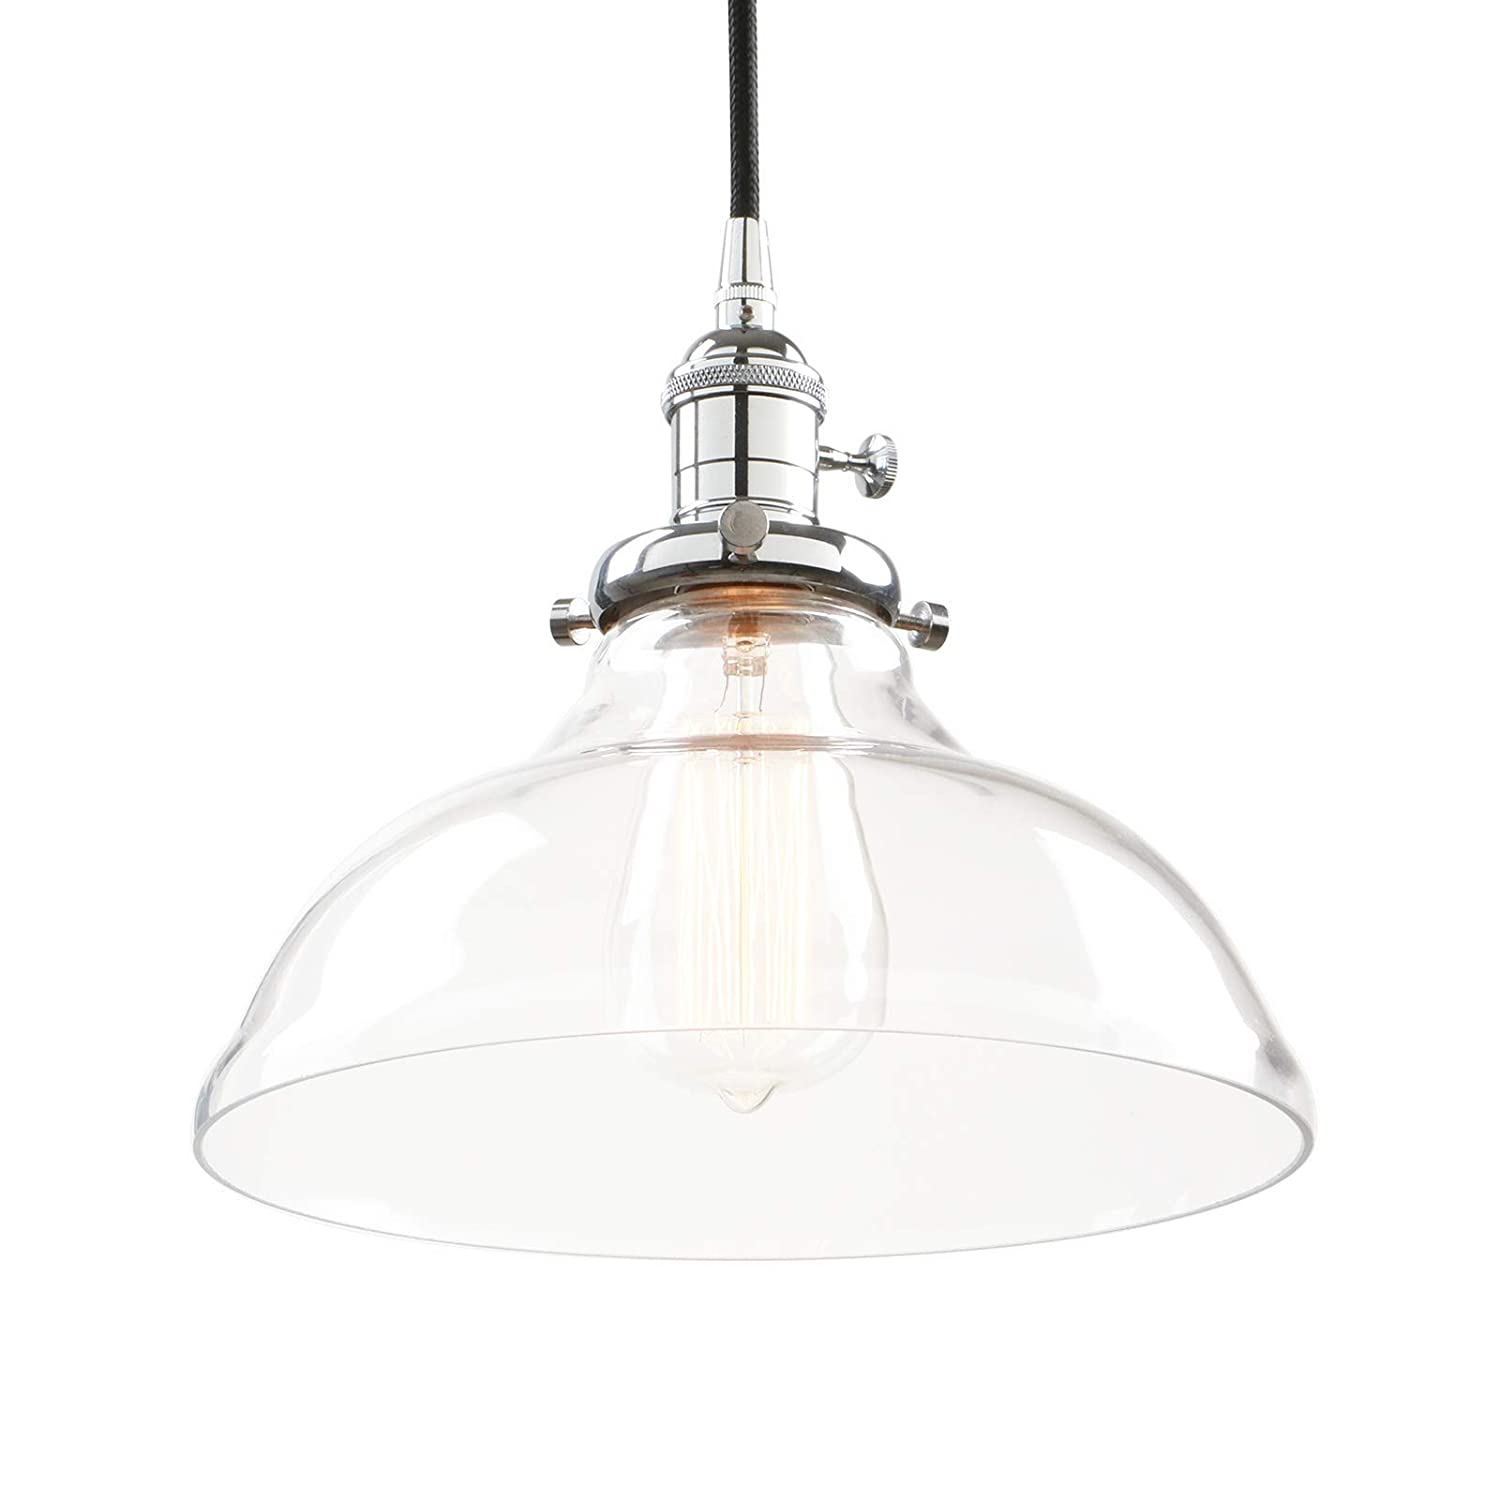 Phansthy 9.84 Inch Vintage Industrial Pendant Ceiling Light Shade Metal Chrome Clear Glass Chandelier Shade fenthy FTY269A